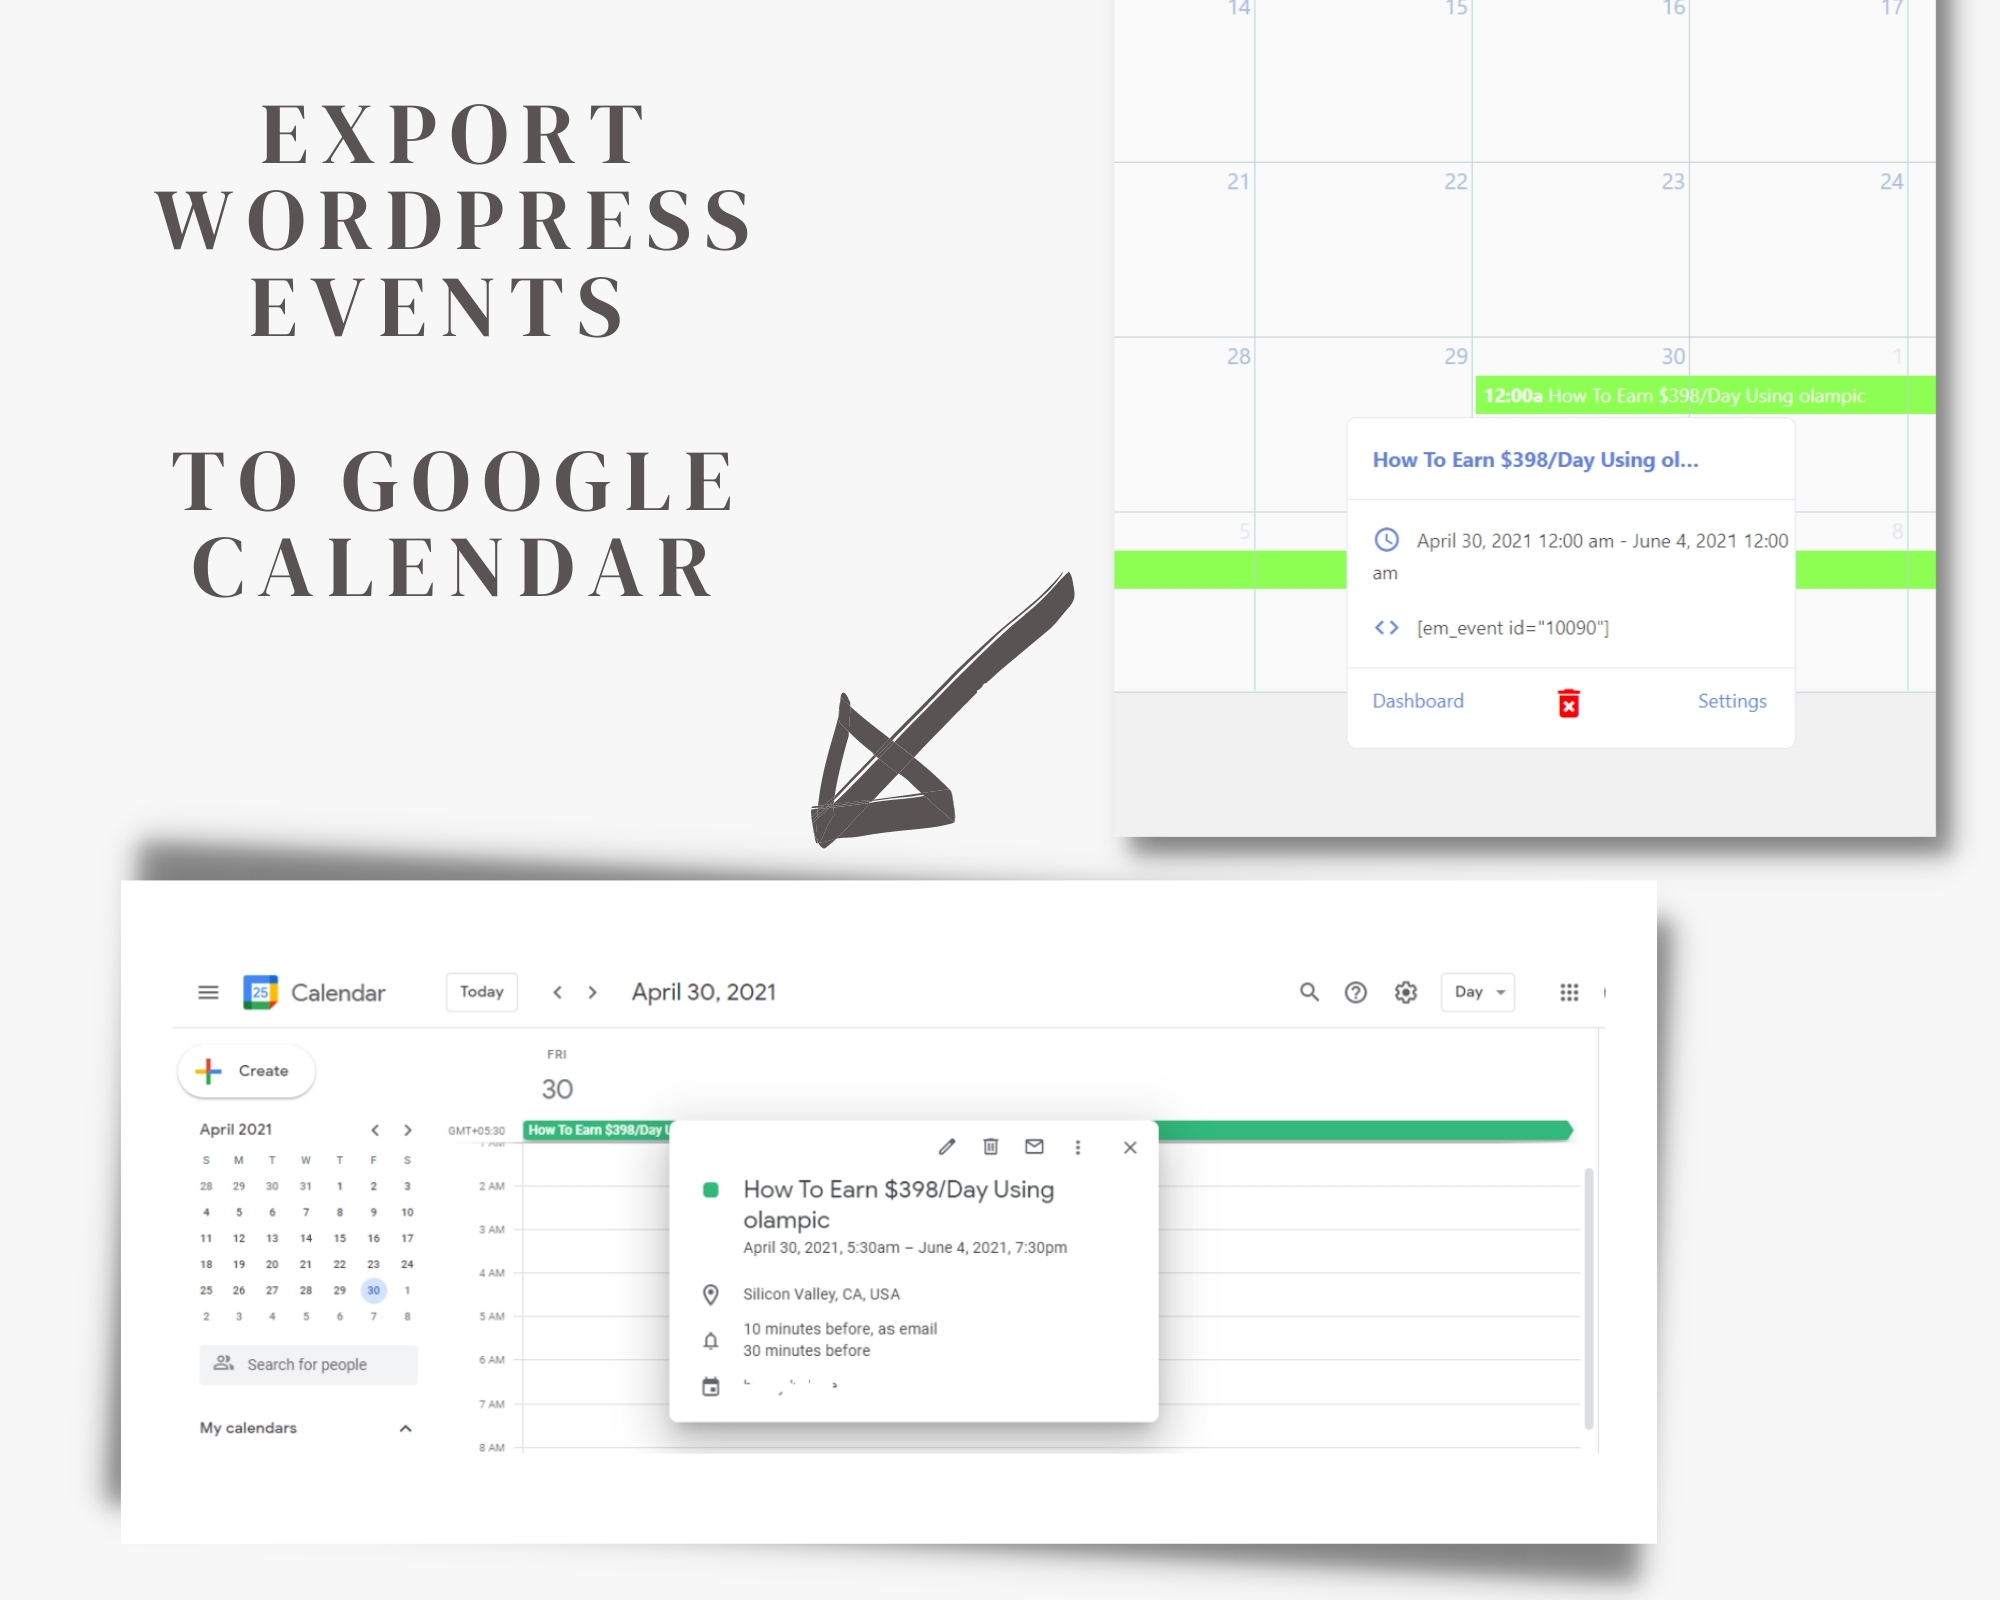 How To Export Or Add Events To Google Calendar From WordPress? with regard to Add Sunrise And Sunset To Google Calendar